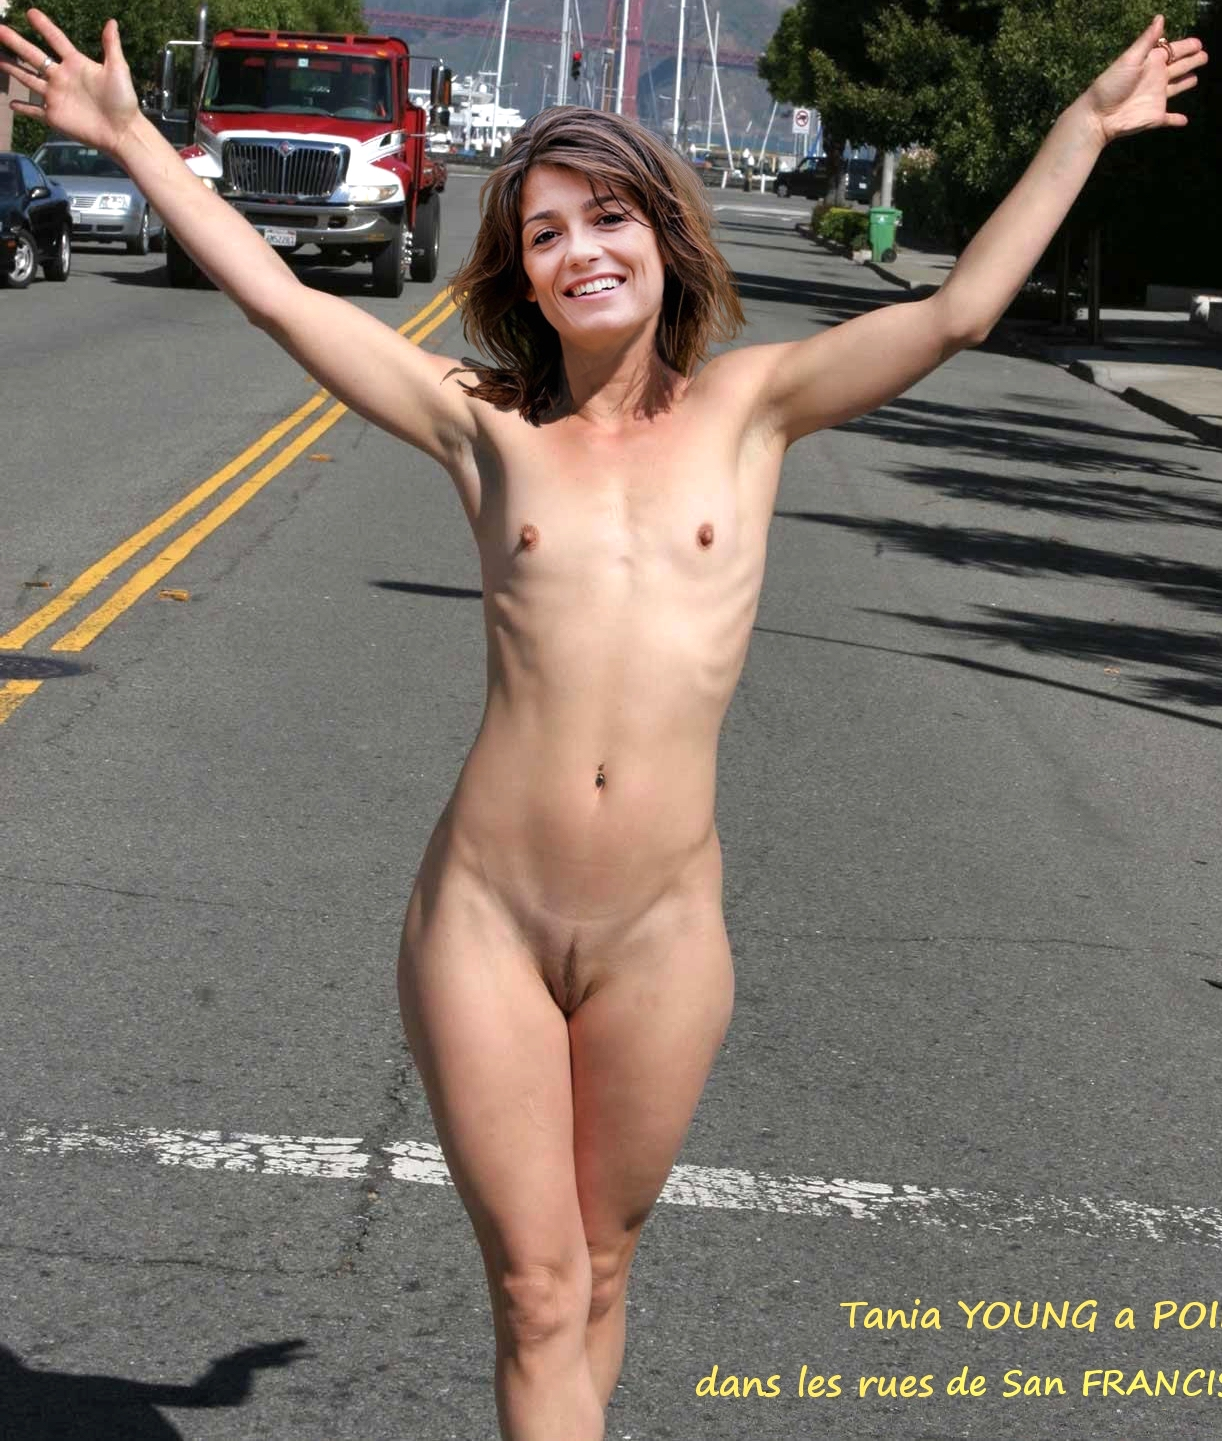 Tania Young naked slim body full nude outdoor photo